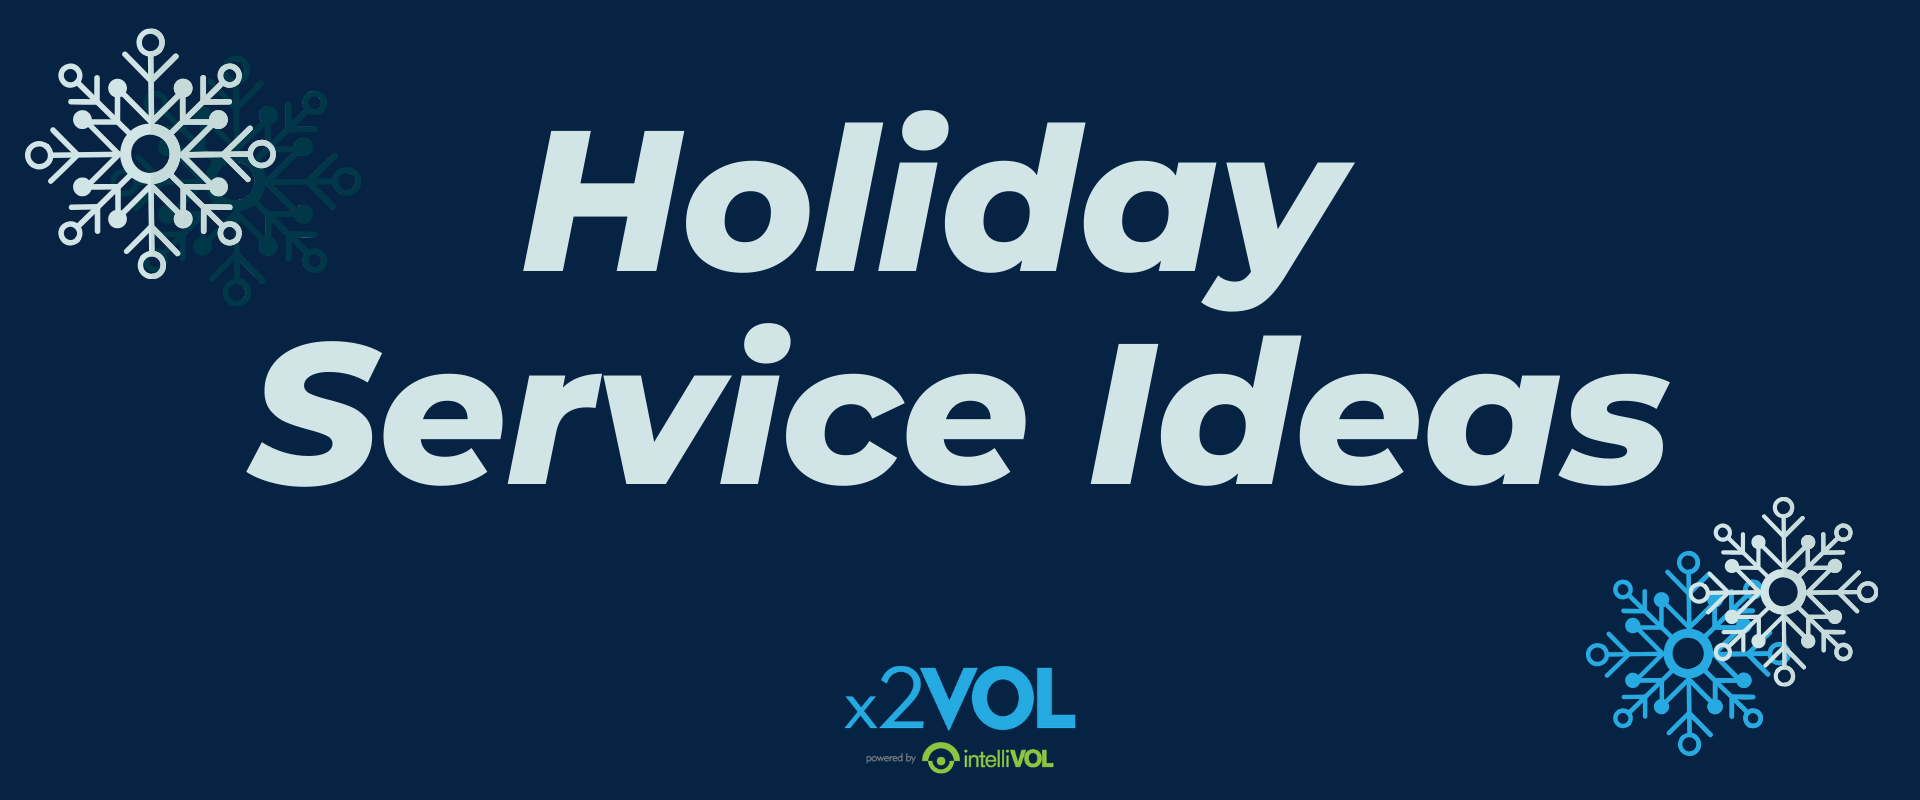 Holiday Service Ideas